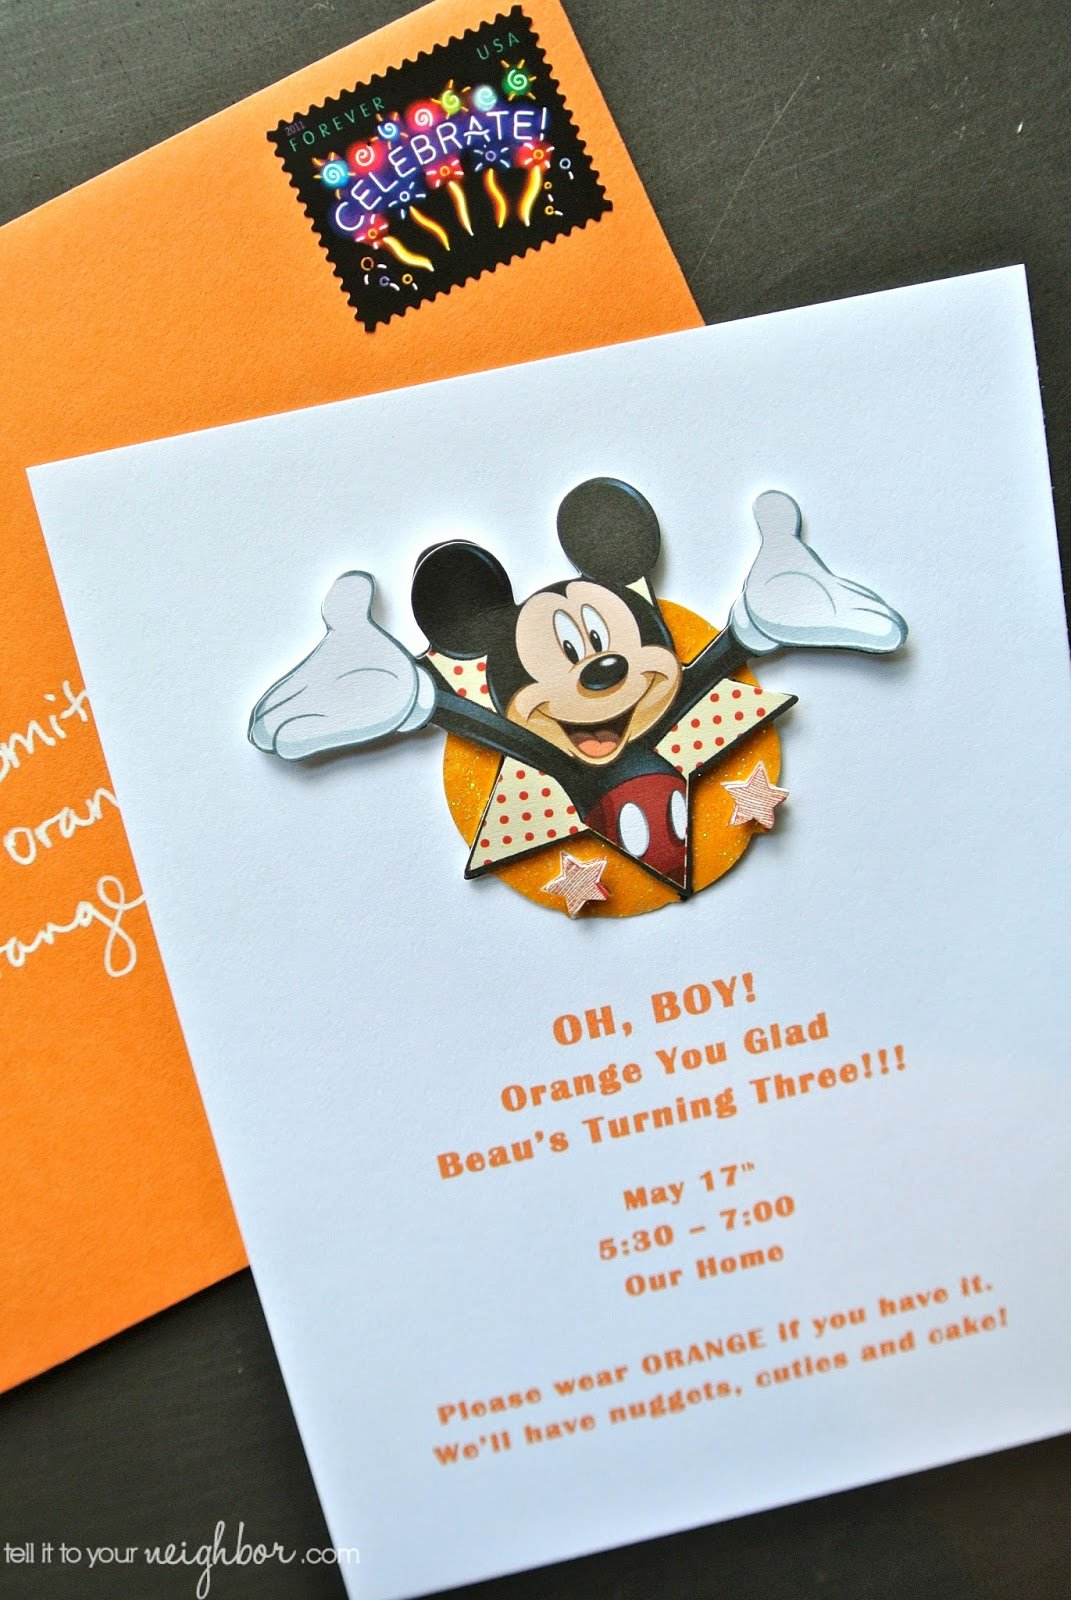 Mickey Mouse Invitations Template Luxury Easy Mickey Mouse Invite Free Template Tell It to Your Neighbor